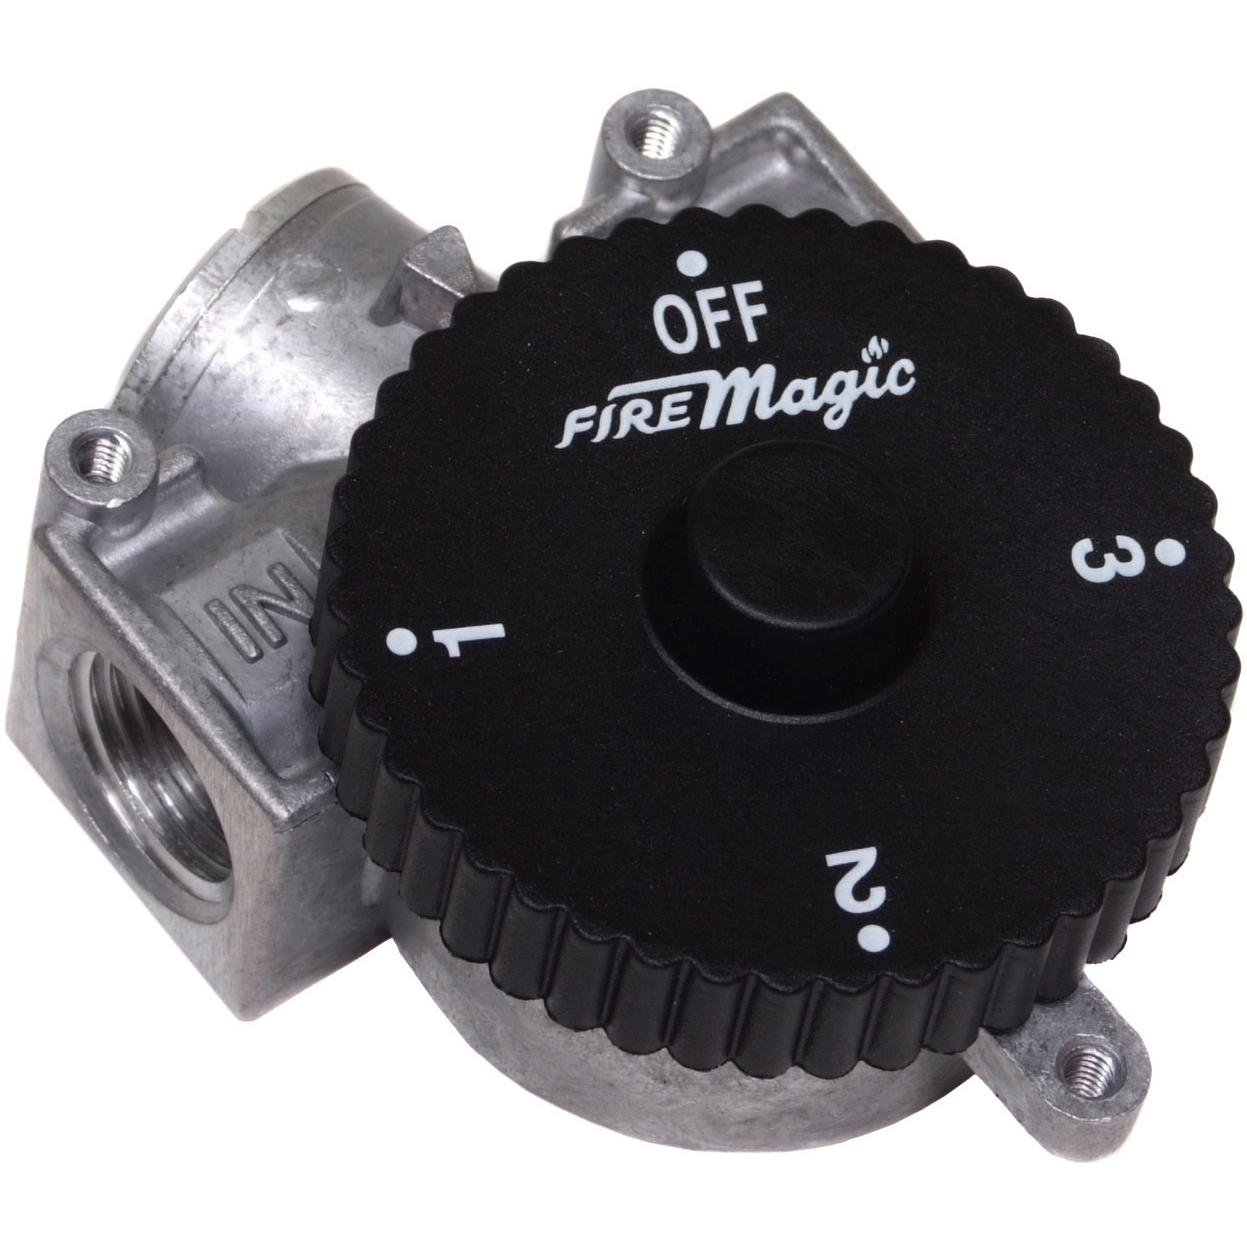 FireMagic 3092 Replacement One Hour Automatic Timer Safety Shut Off Valve,